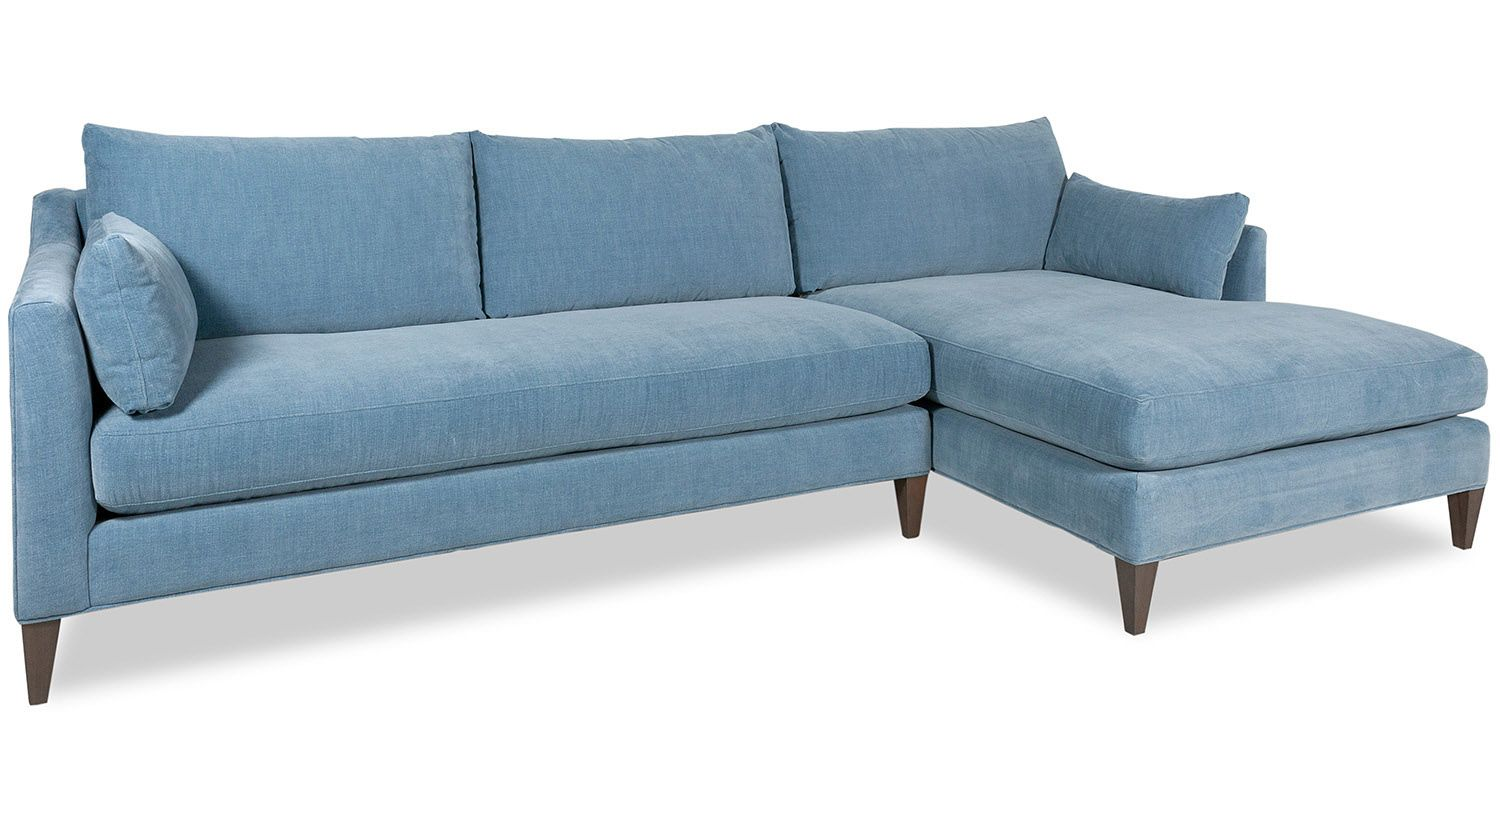 Circle Furniture Alewife Chaise Sectional Cambridge Collection